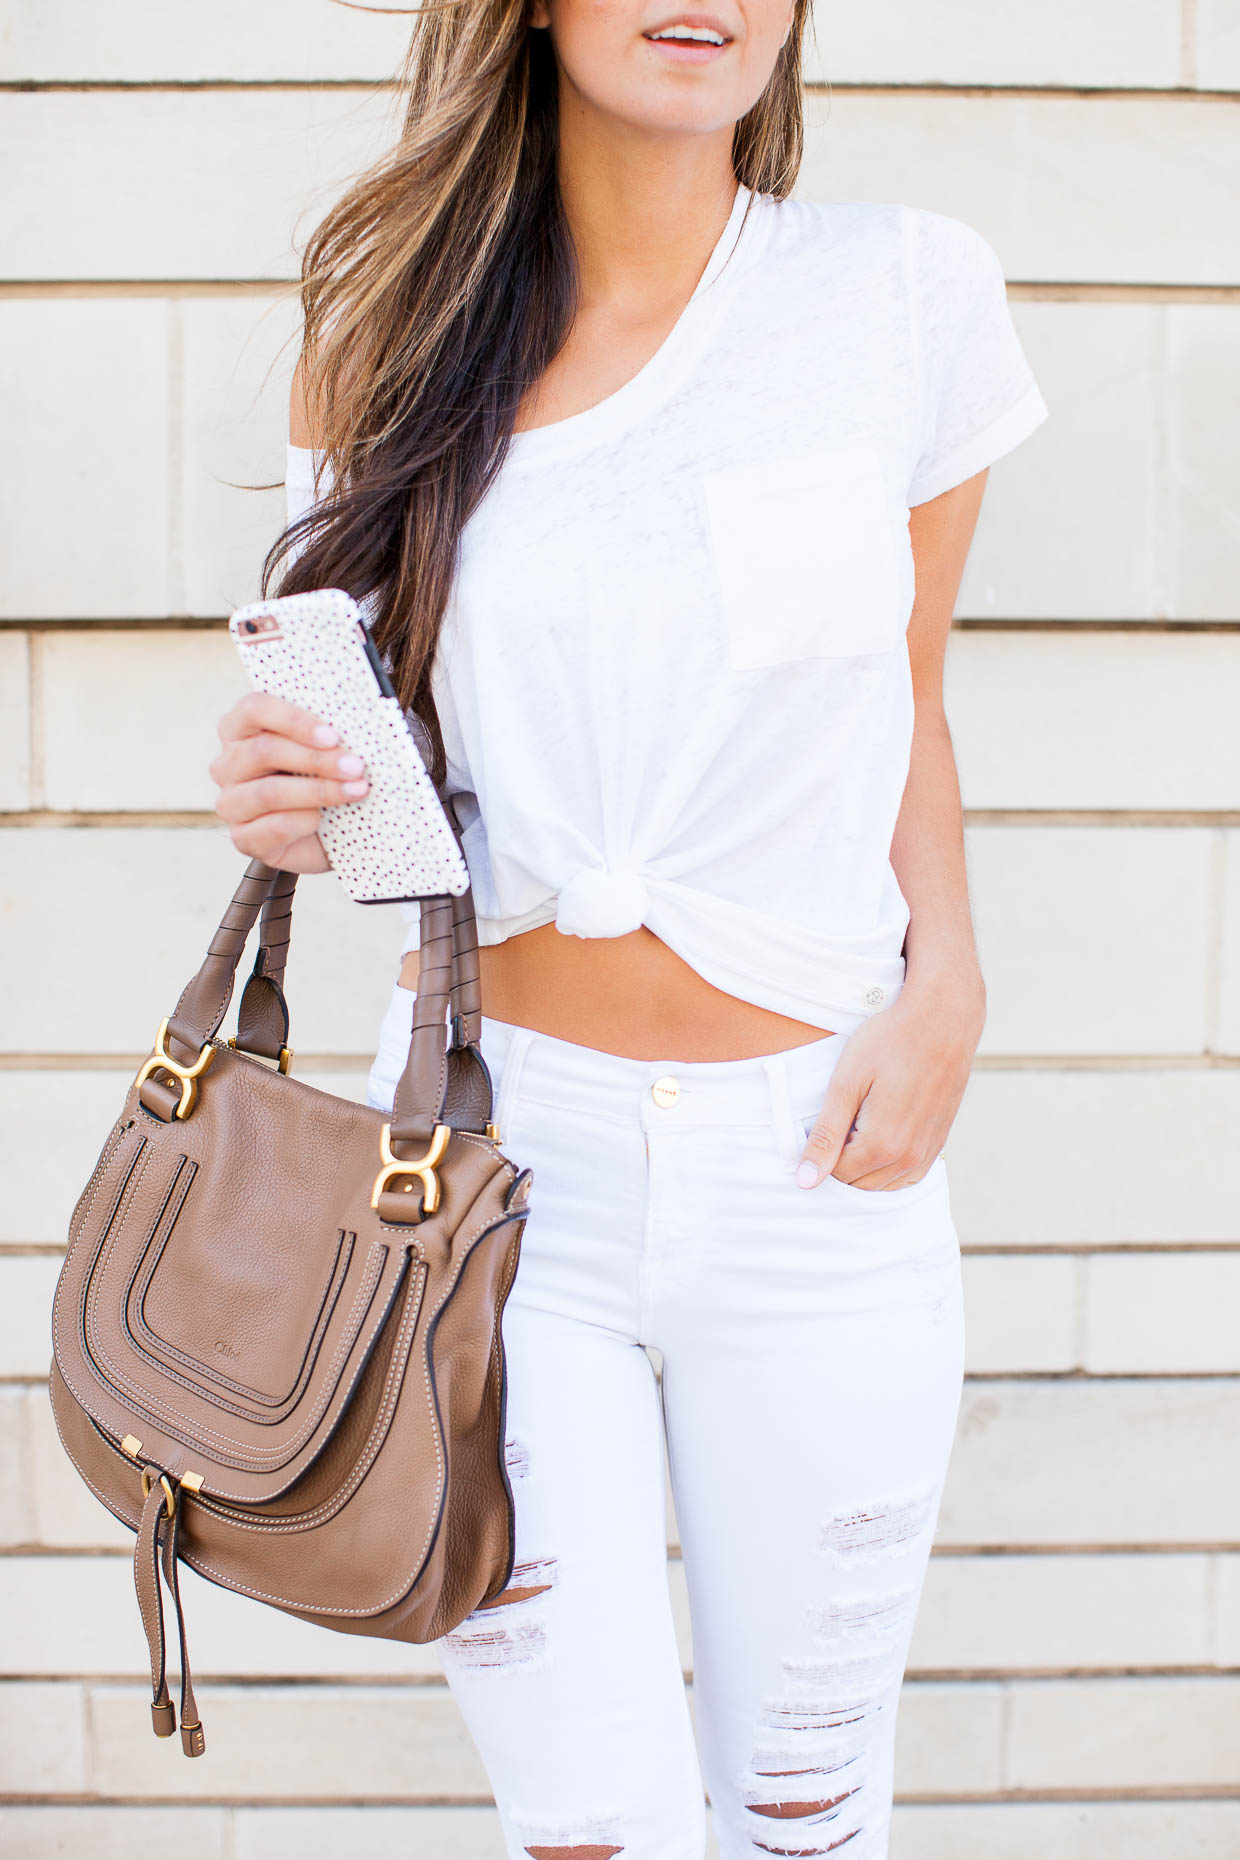 Fashion Blogger Jessi of The Darling Detail wearing Chloe Marcie Satchel in Nut